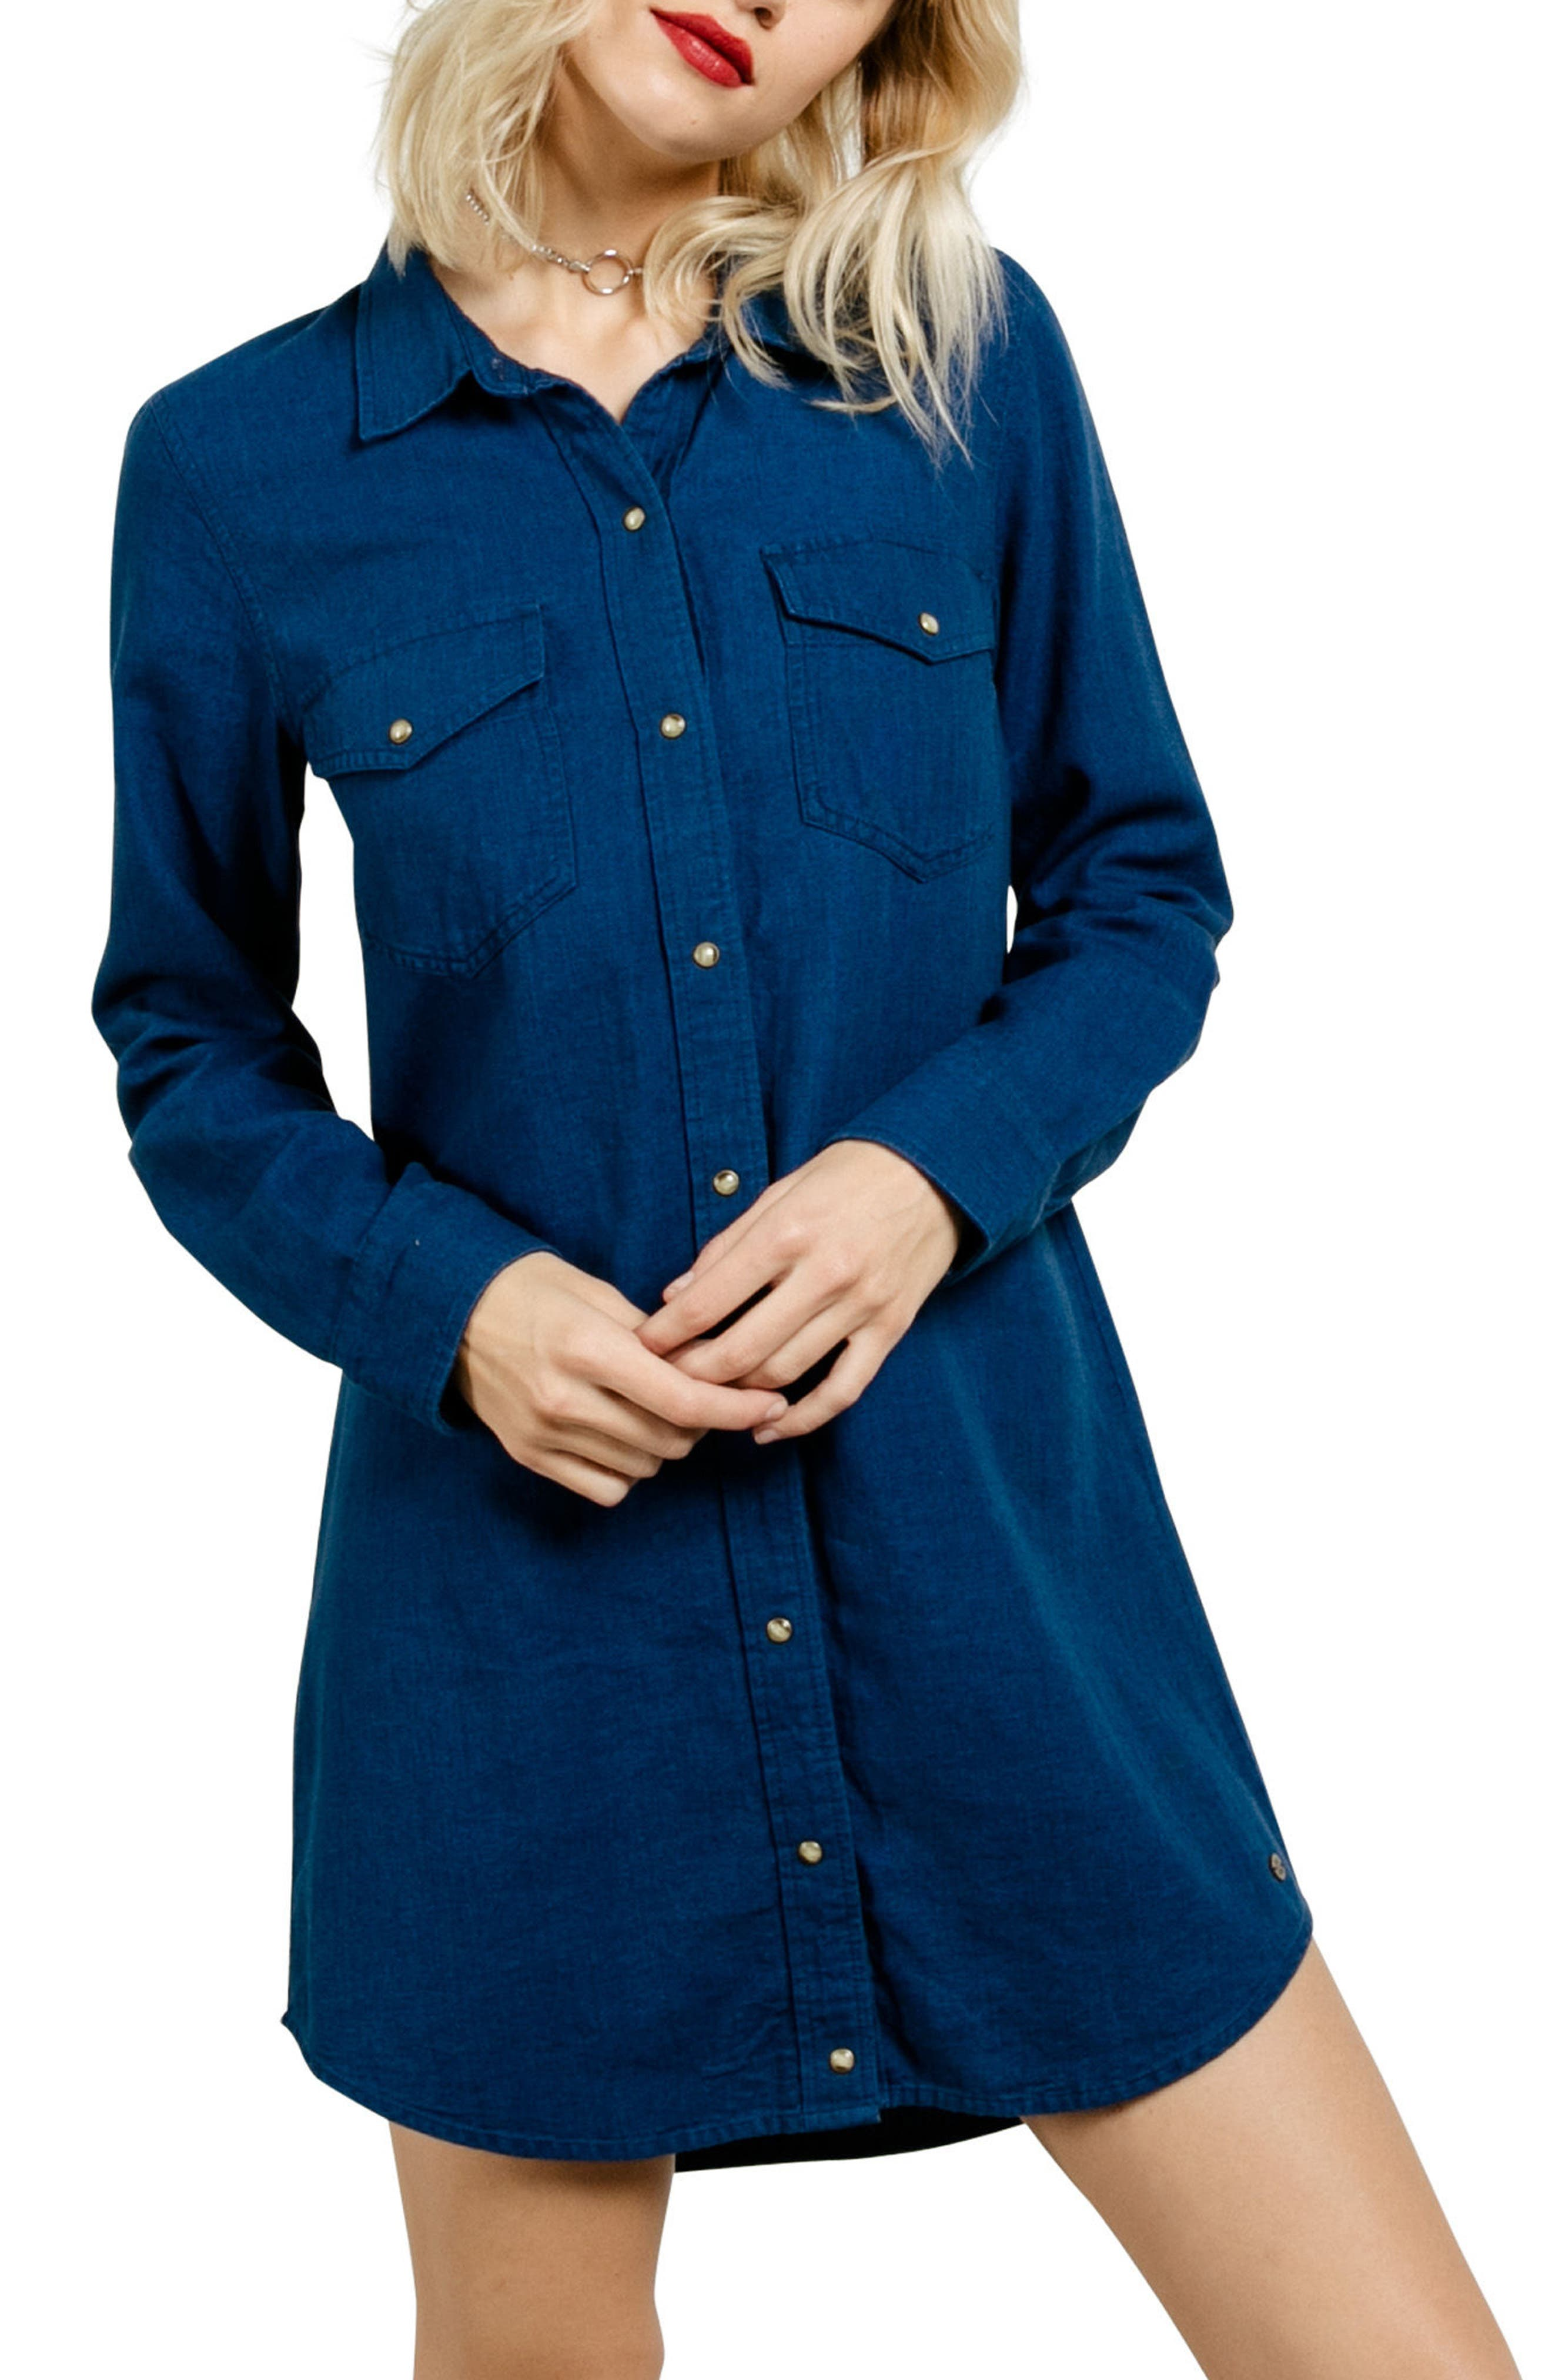 Main Image - Volcom Cham Jam Chambray Shirtdress